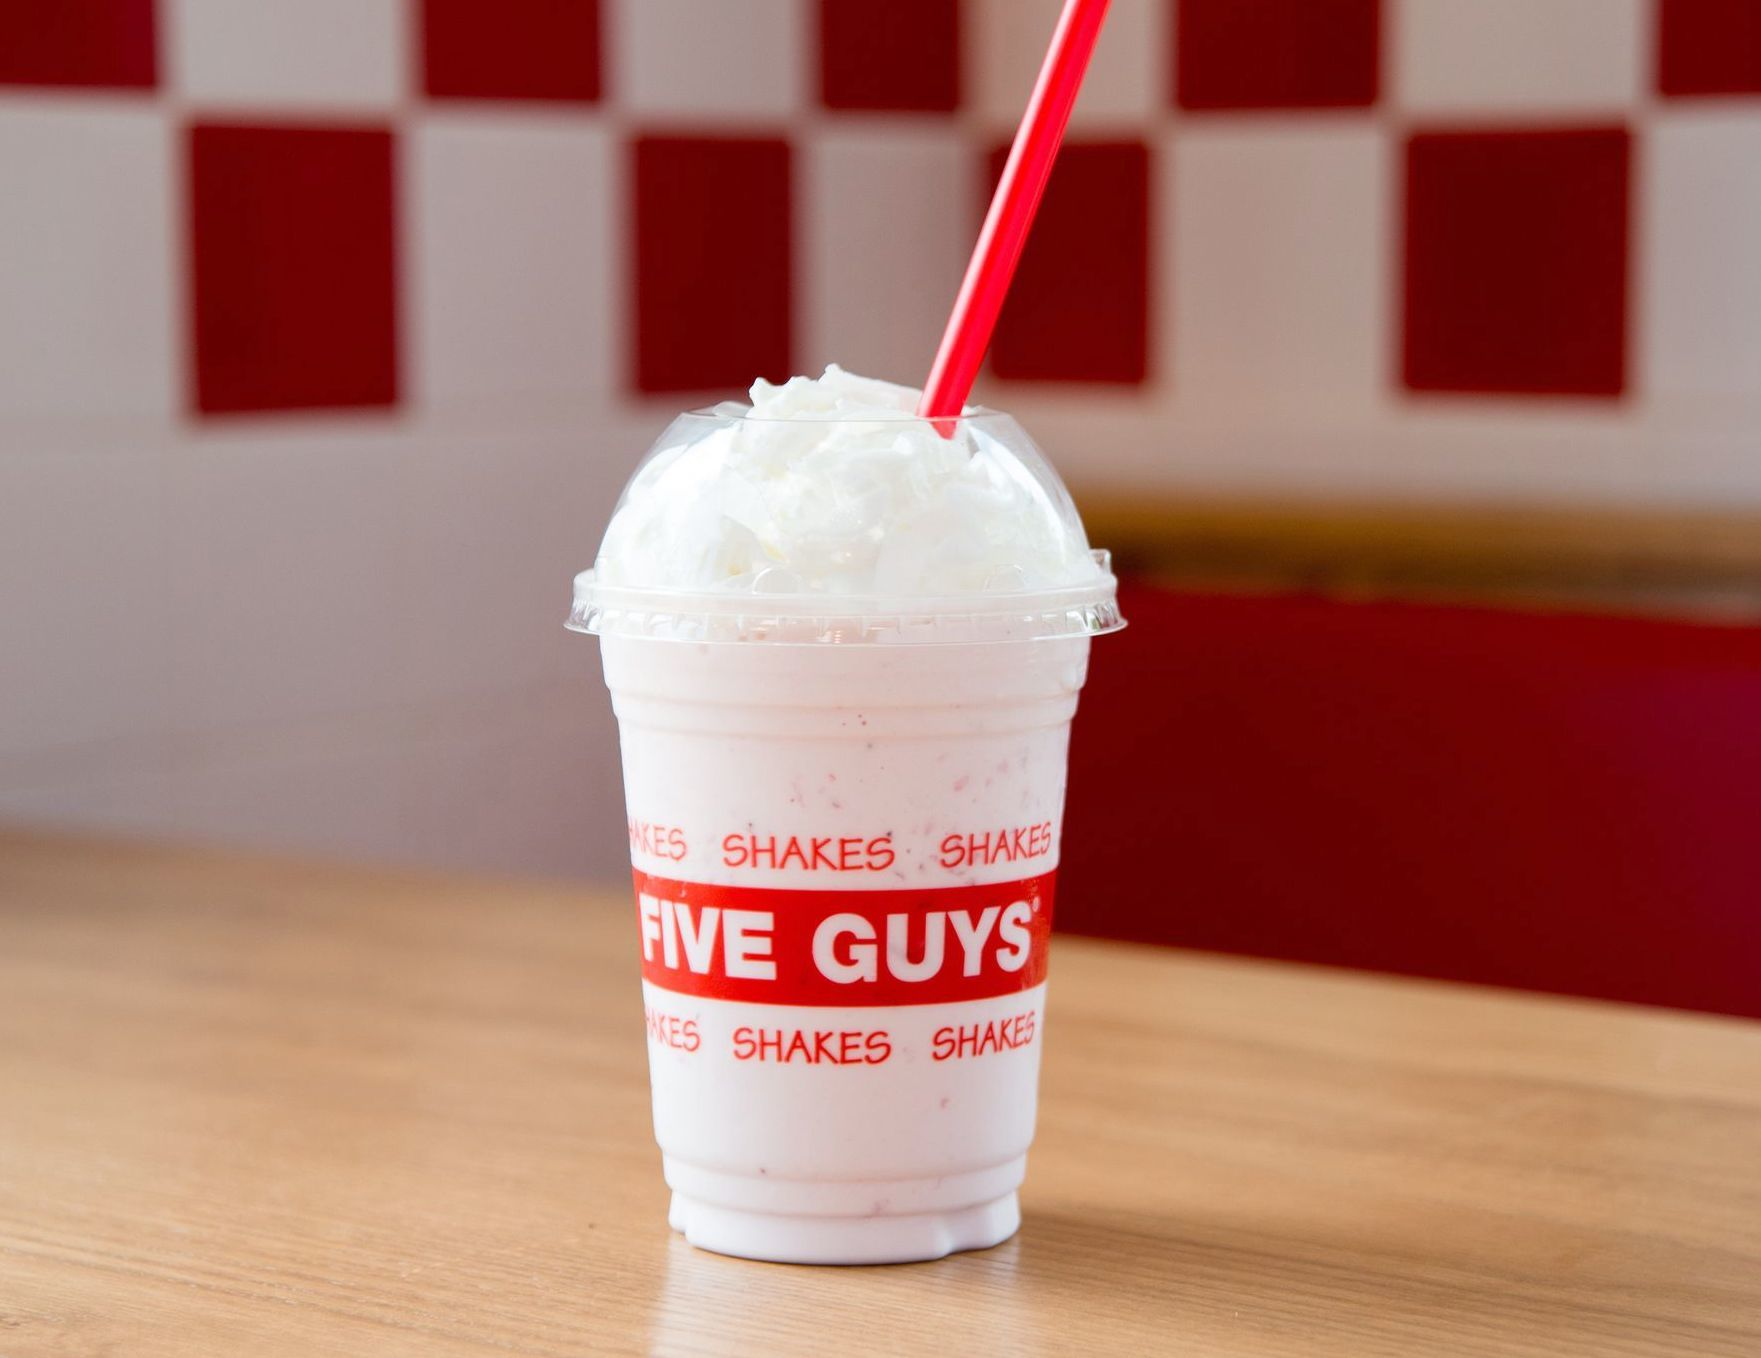 Strawberry Milkshake at Five Guys